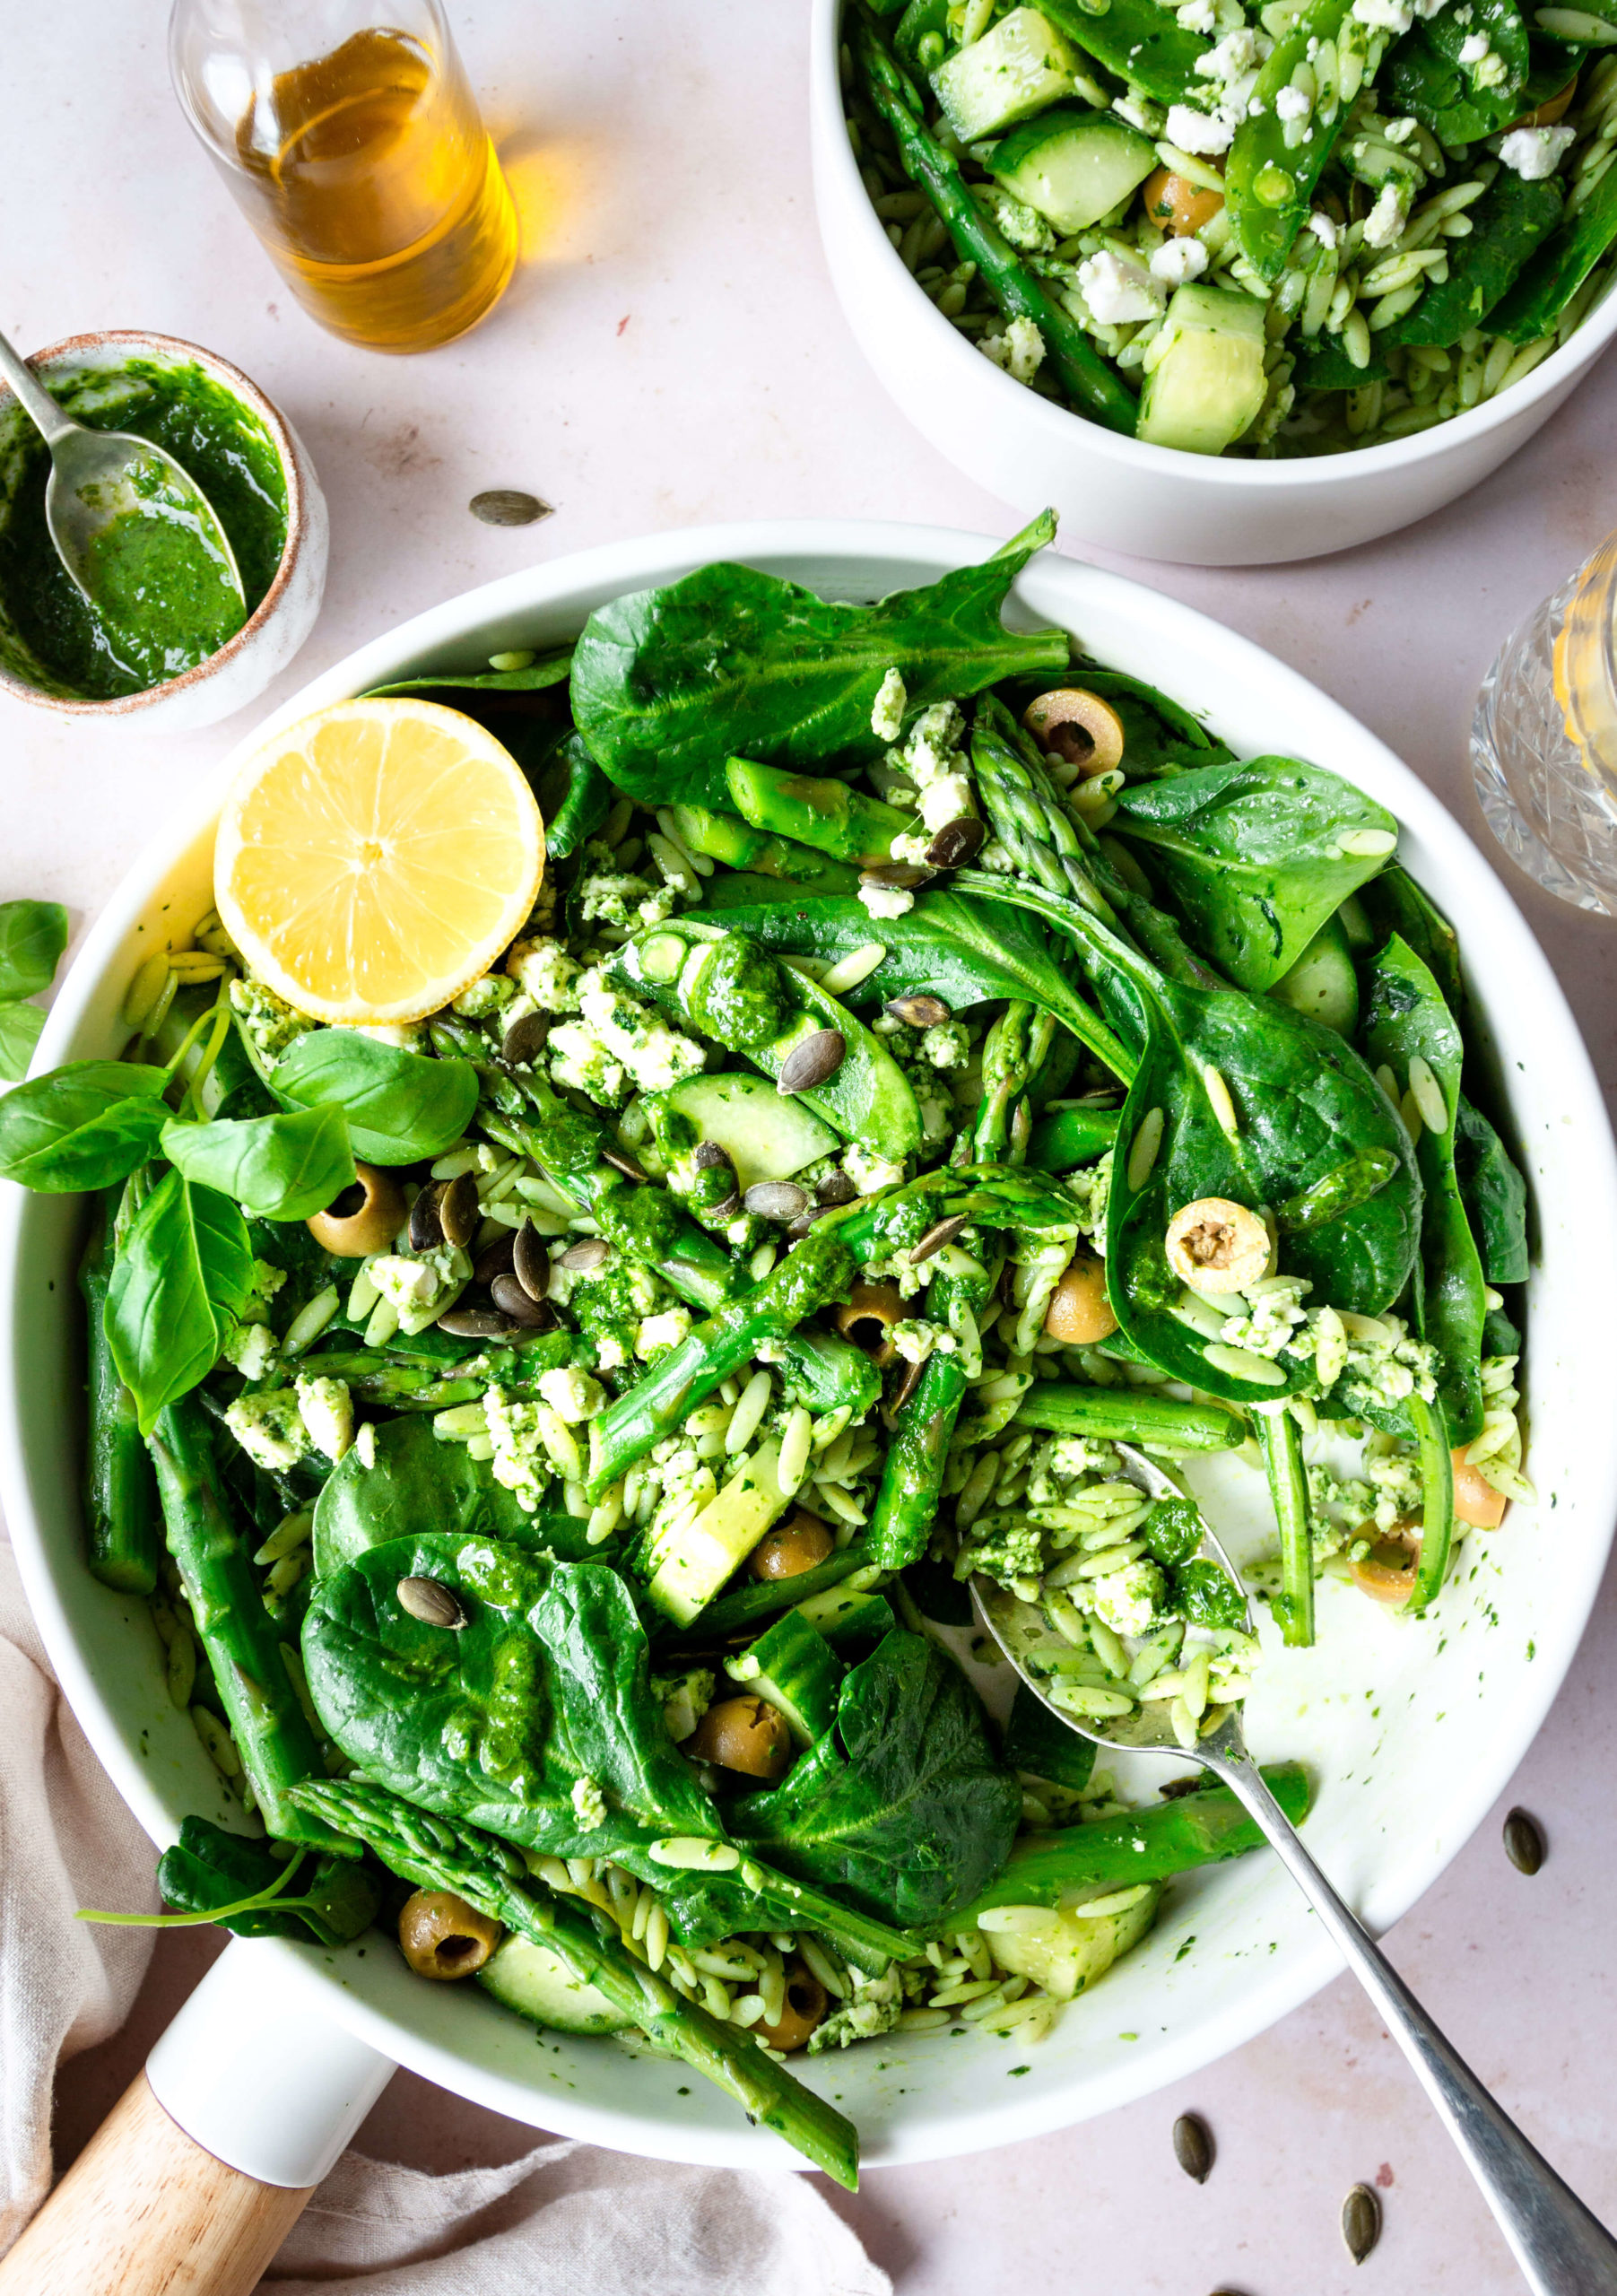 Top down view of green orzo salad in a white bowl